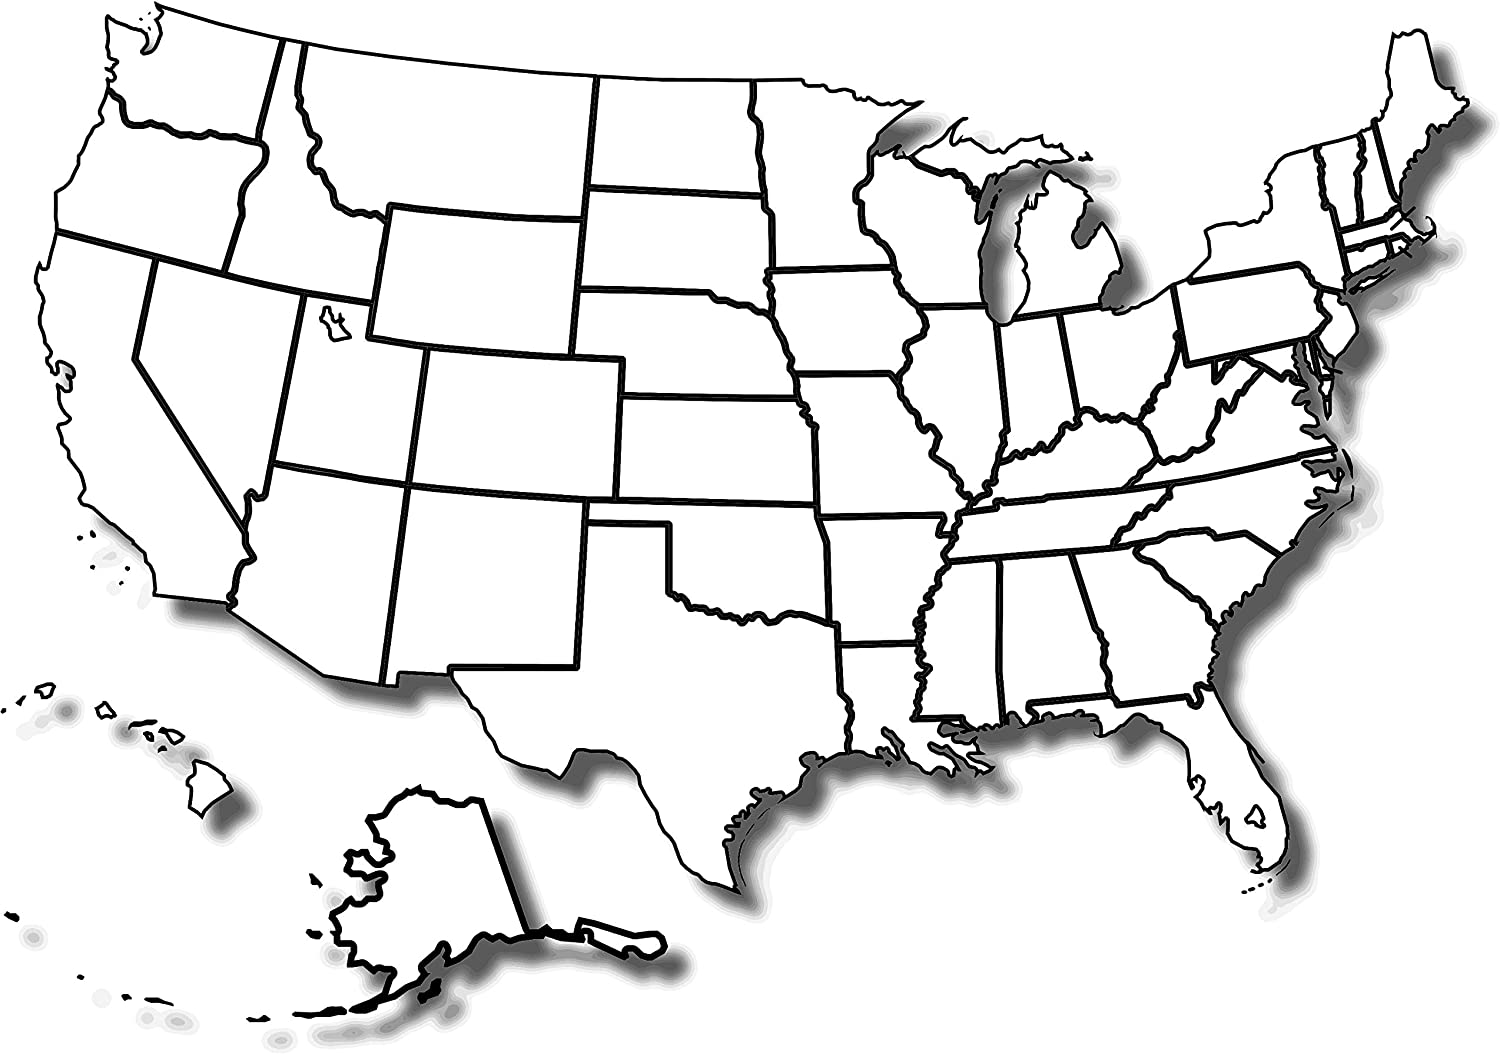 Printable Blank Map Of Us Amazon.com: Map   Free Printable Blank Us Map of The USA Mr